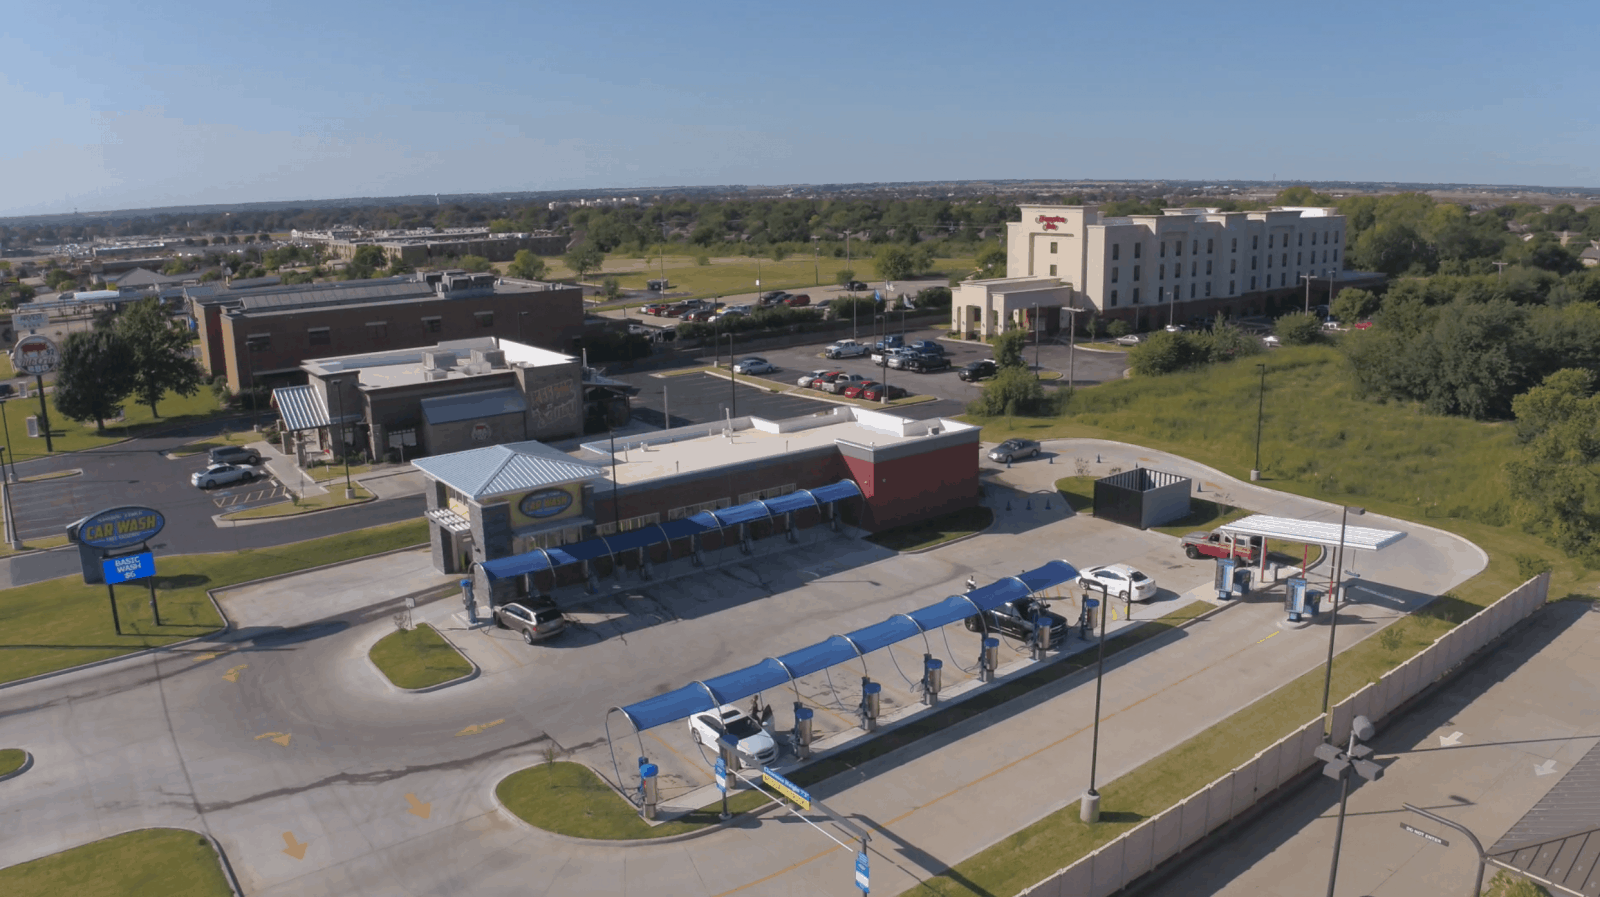 aerial drone photo of car wash facility in Duncan, OK